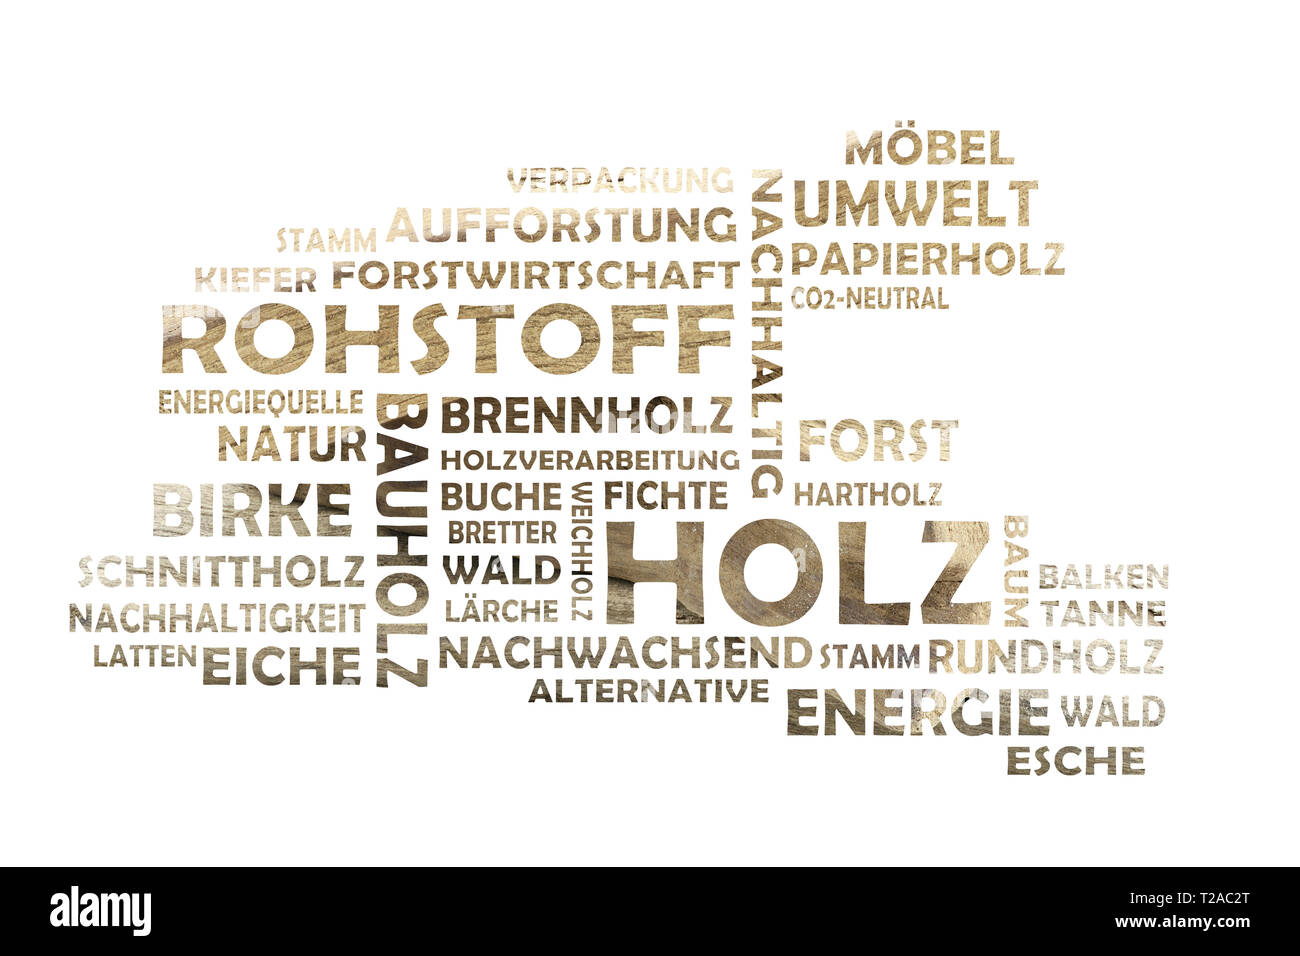 Word cloud cut out with wood as background and relevant german keywords on the subject of raw material wood - Stock Image